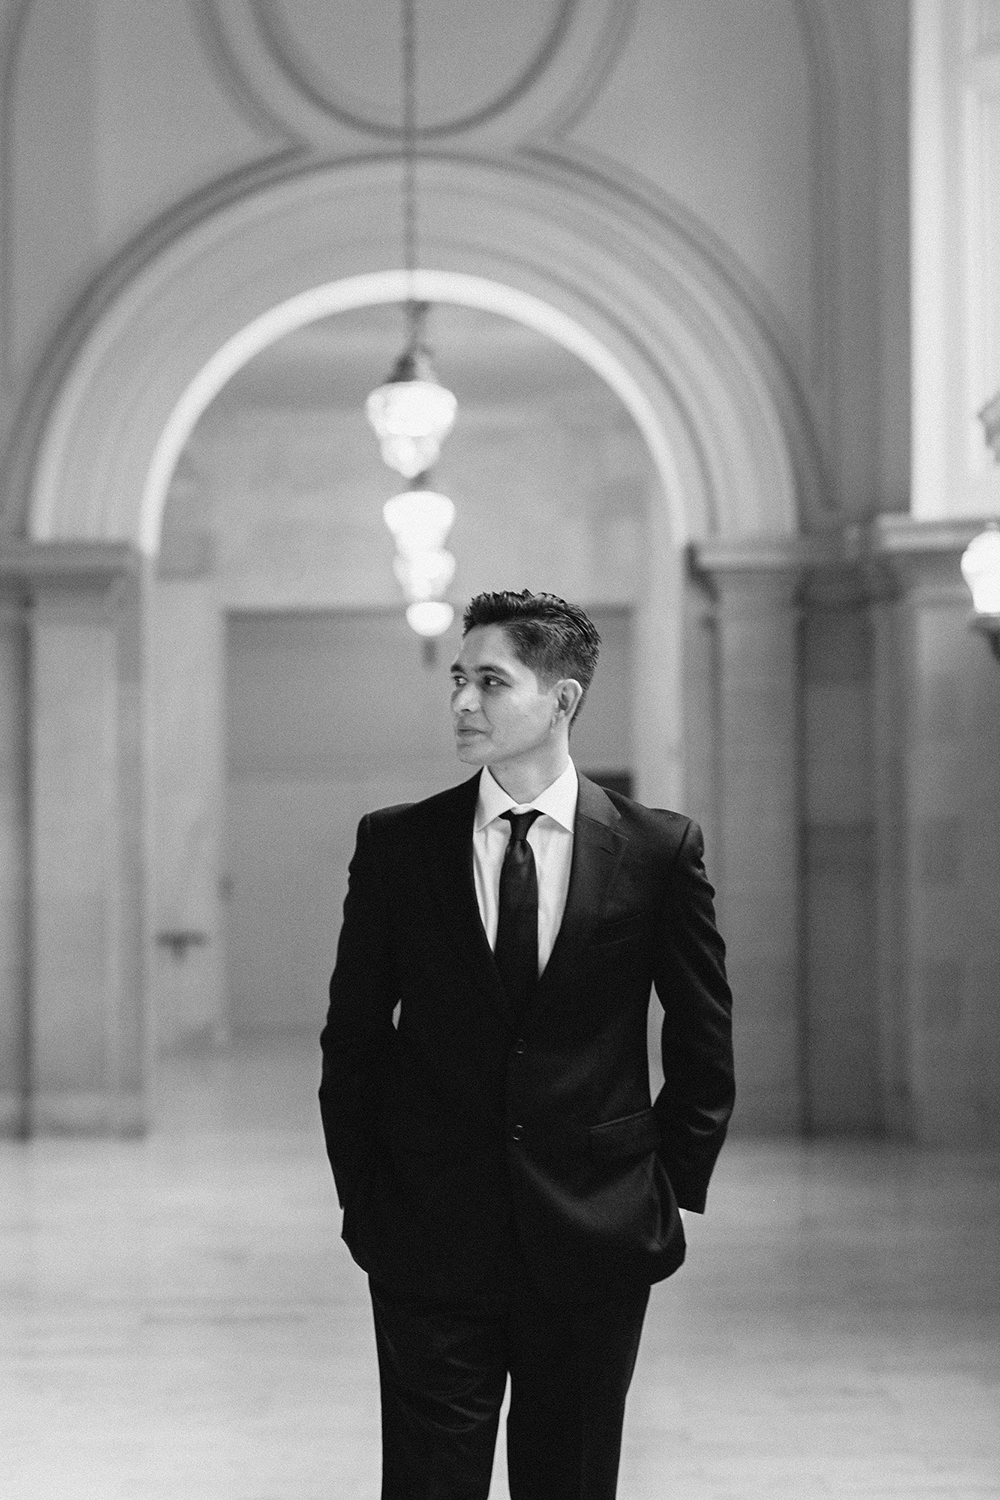 wedding-at-san-francisco-city-hall-08.html